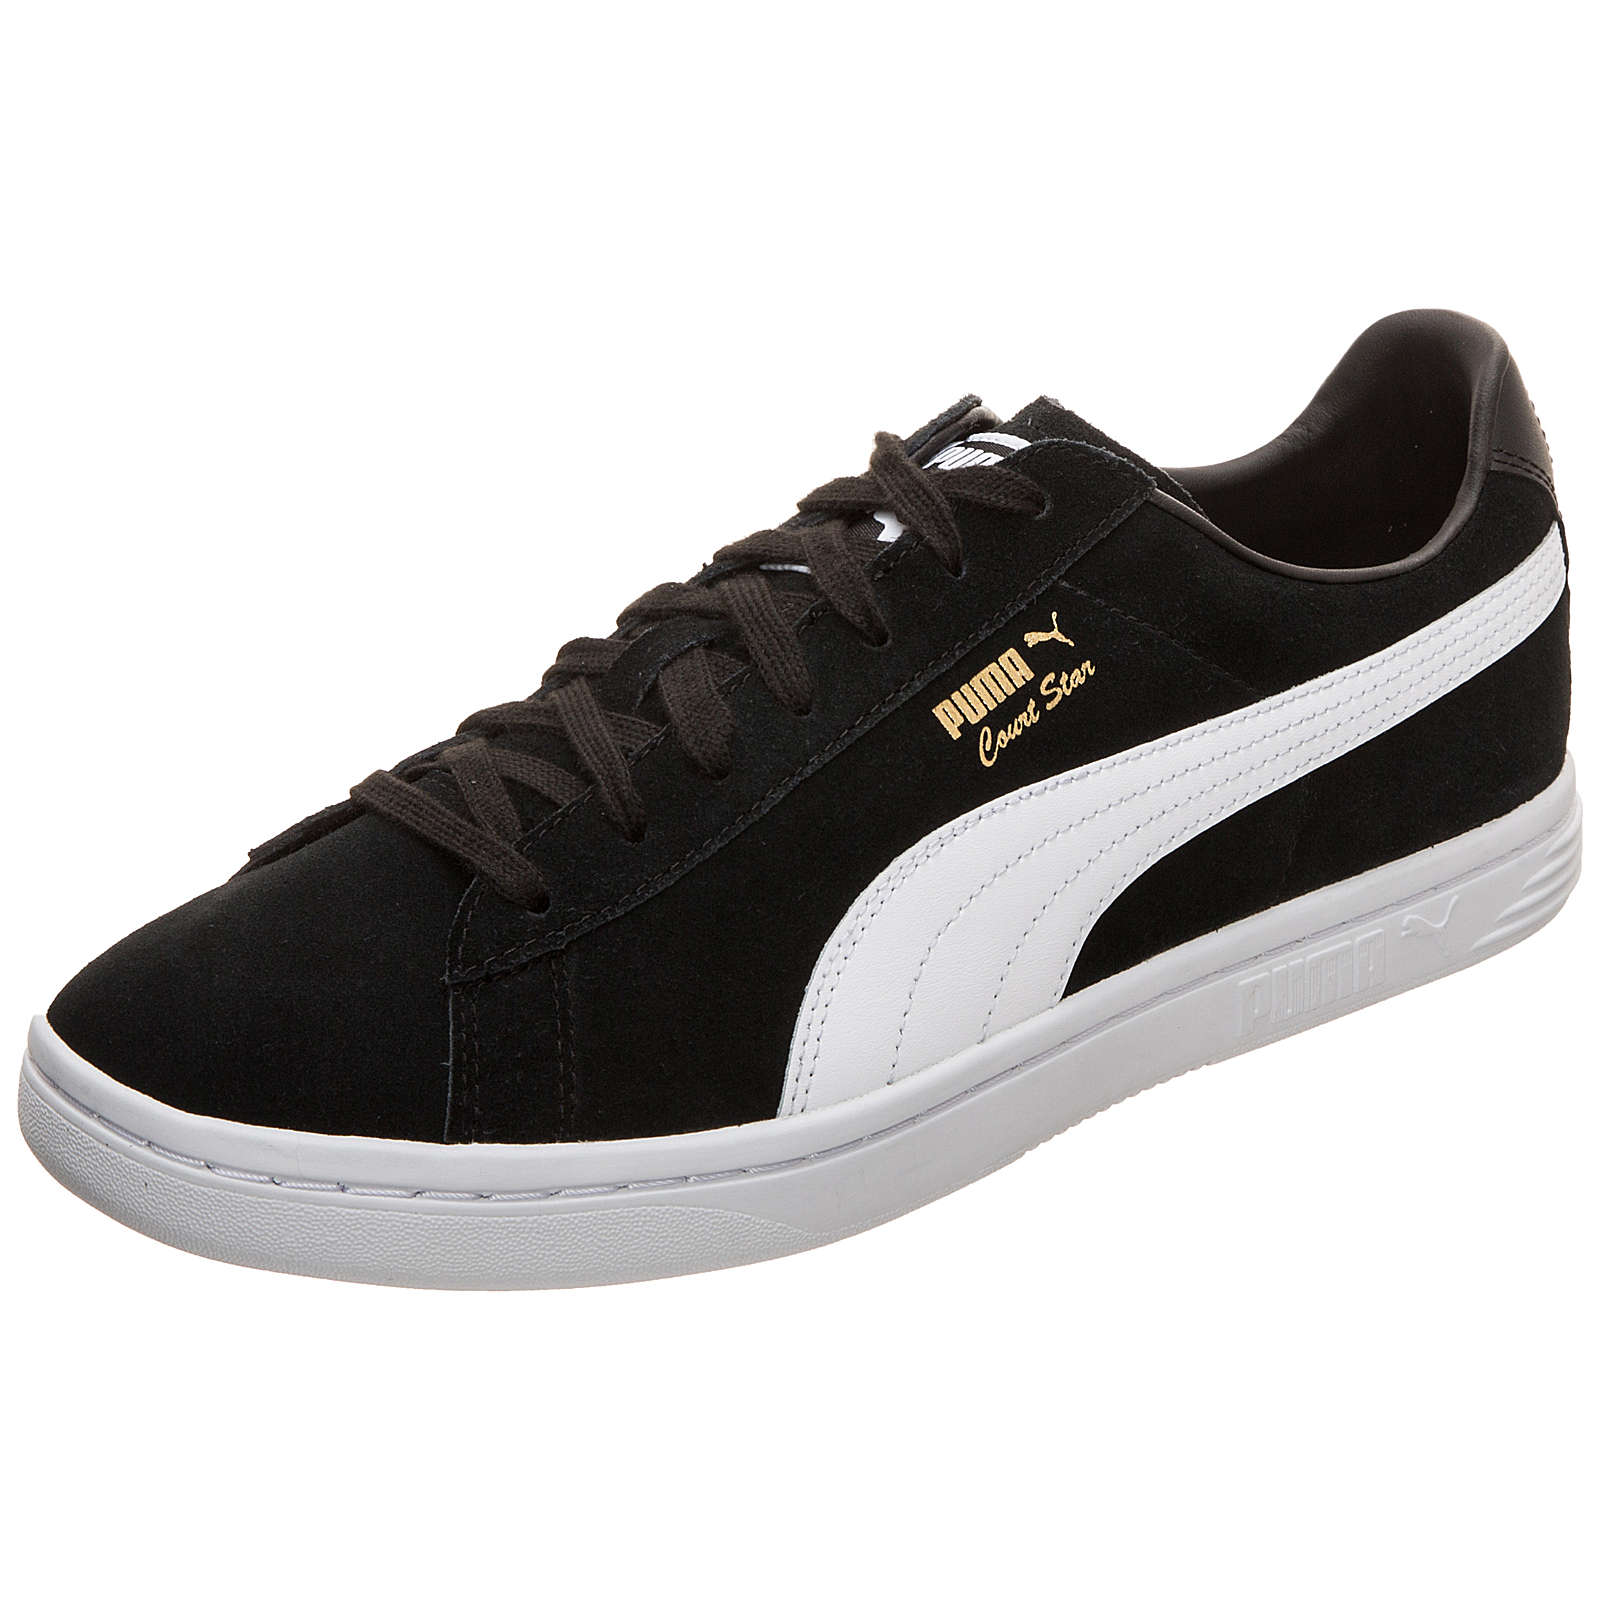 PUMA Court Star FS Sneakers Low schwarz/weiß Herren Gr. 45